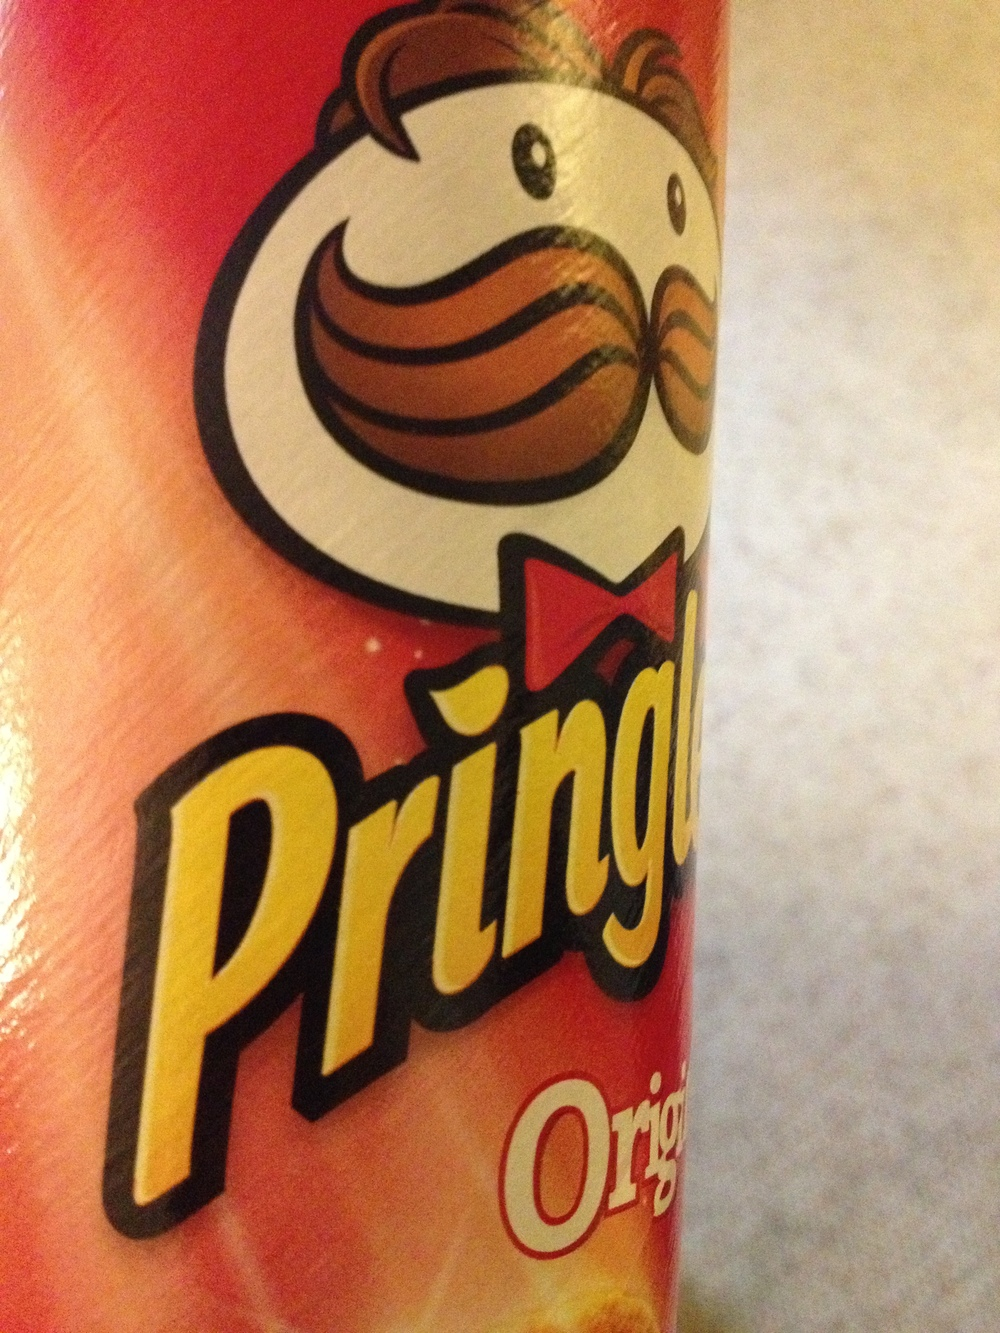 Had some Pringles too. Have to have something you enjoy when carb-loading.